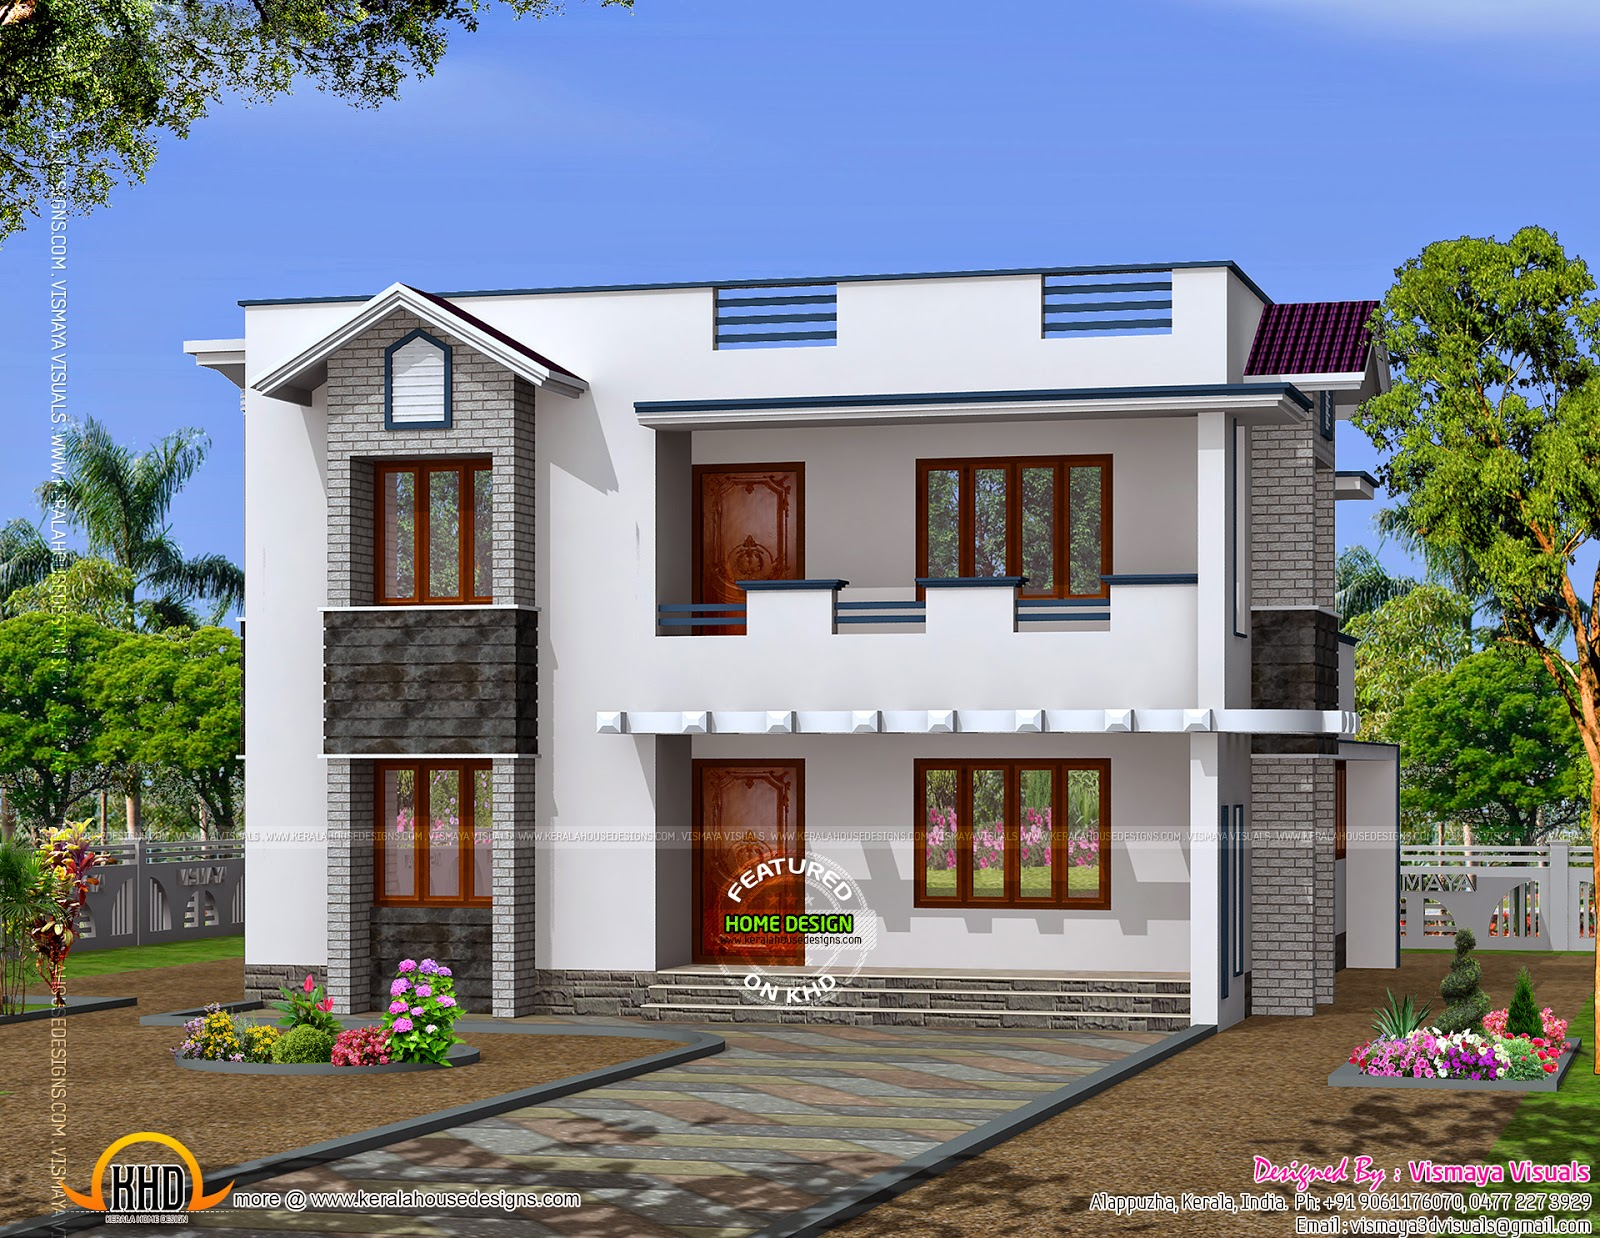 Simple design home - Kerala home design and floor plans